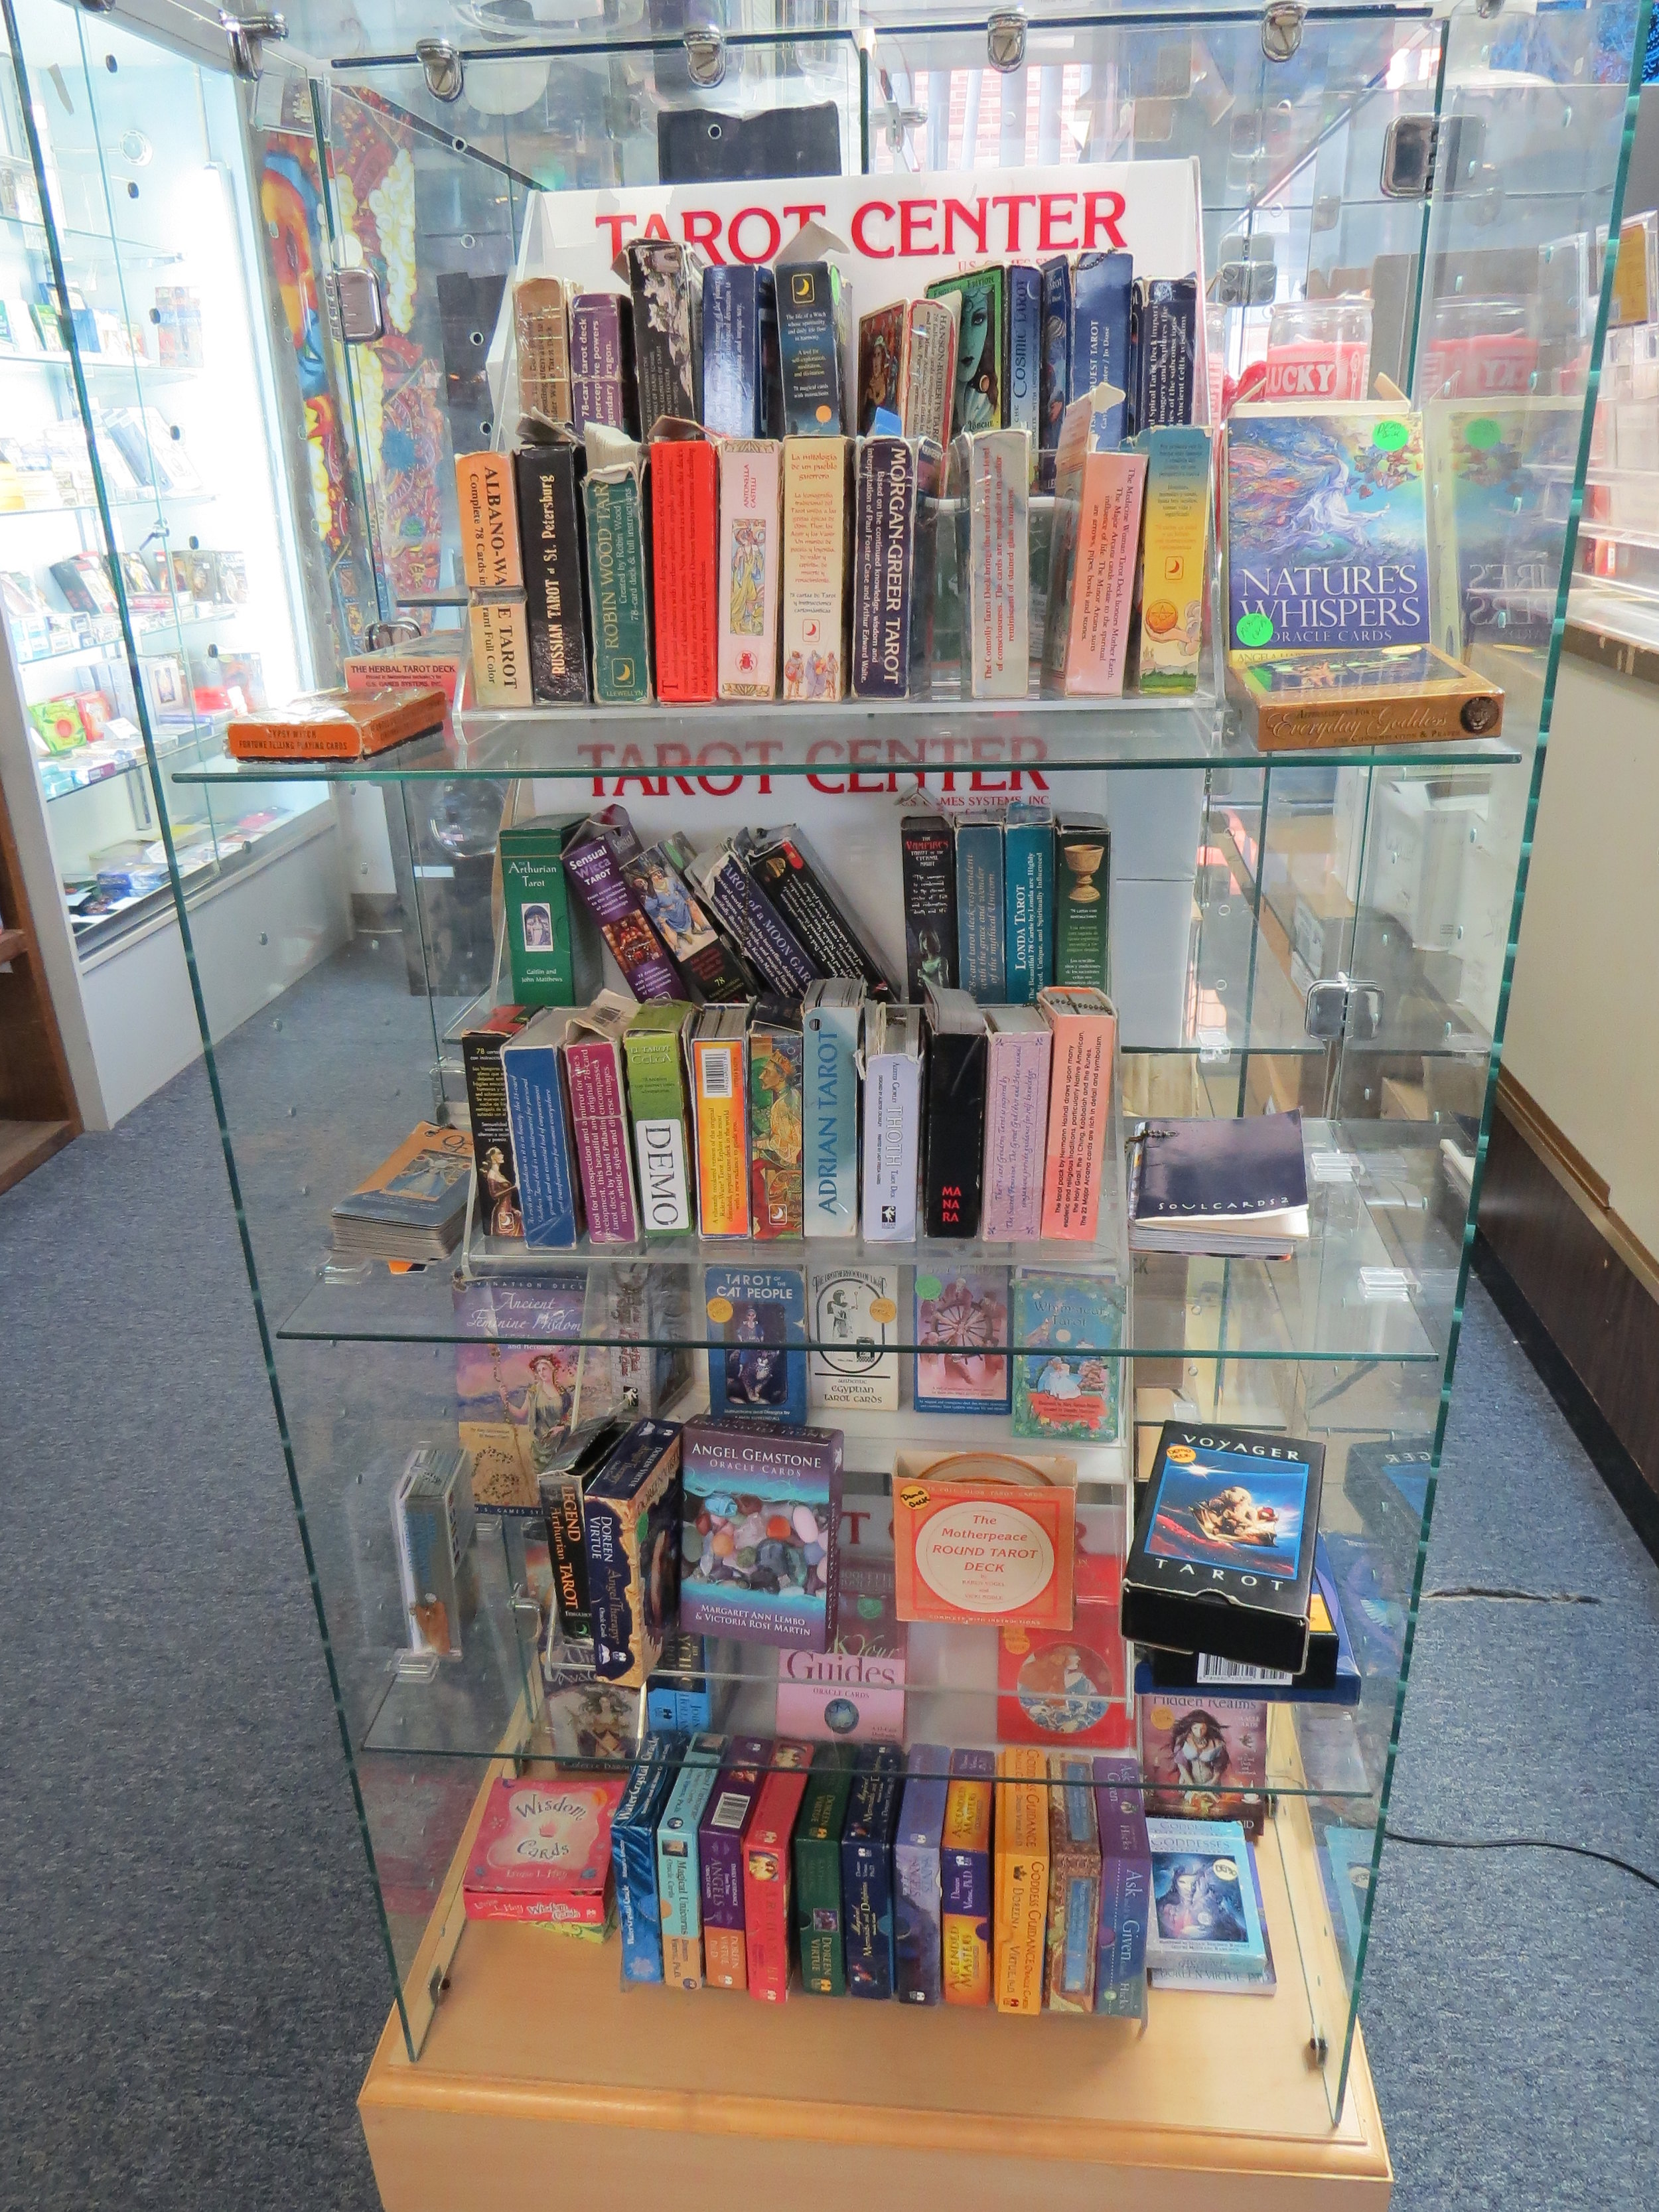 Display of tarot cards. Pathways New Age Books and Music. Photo by Diva Norton.